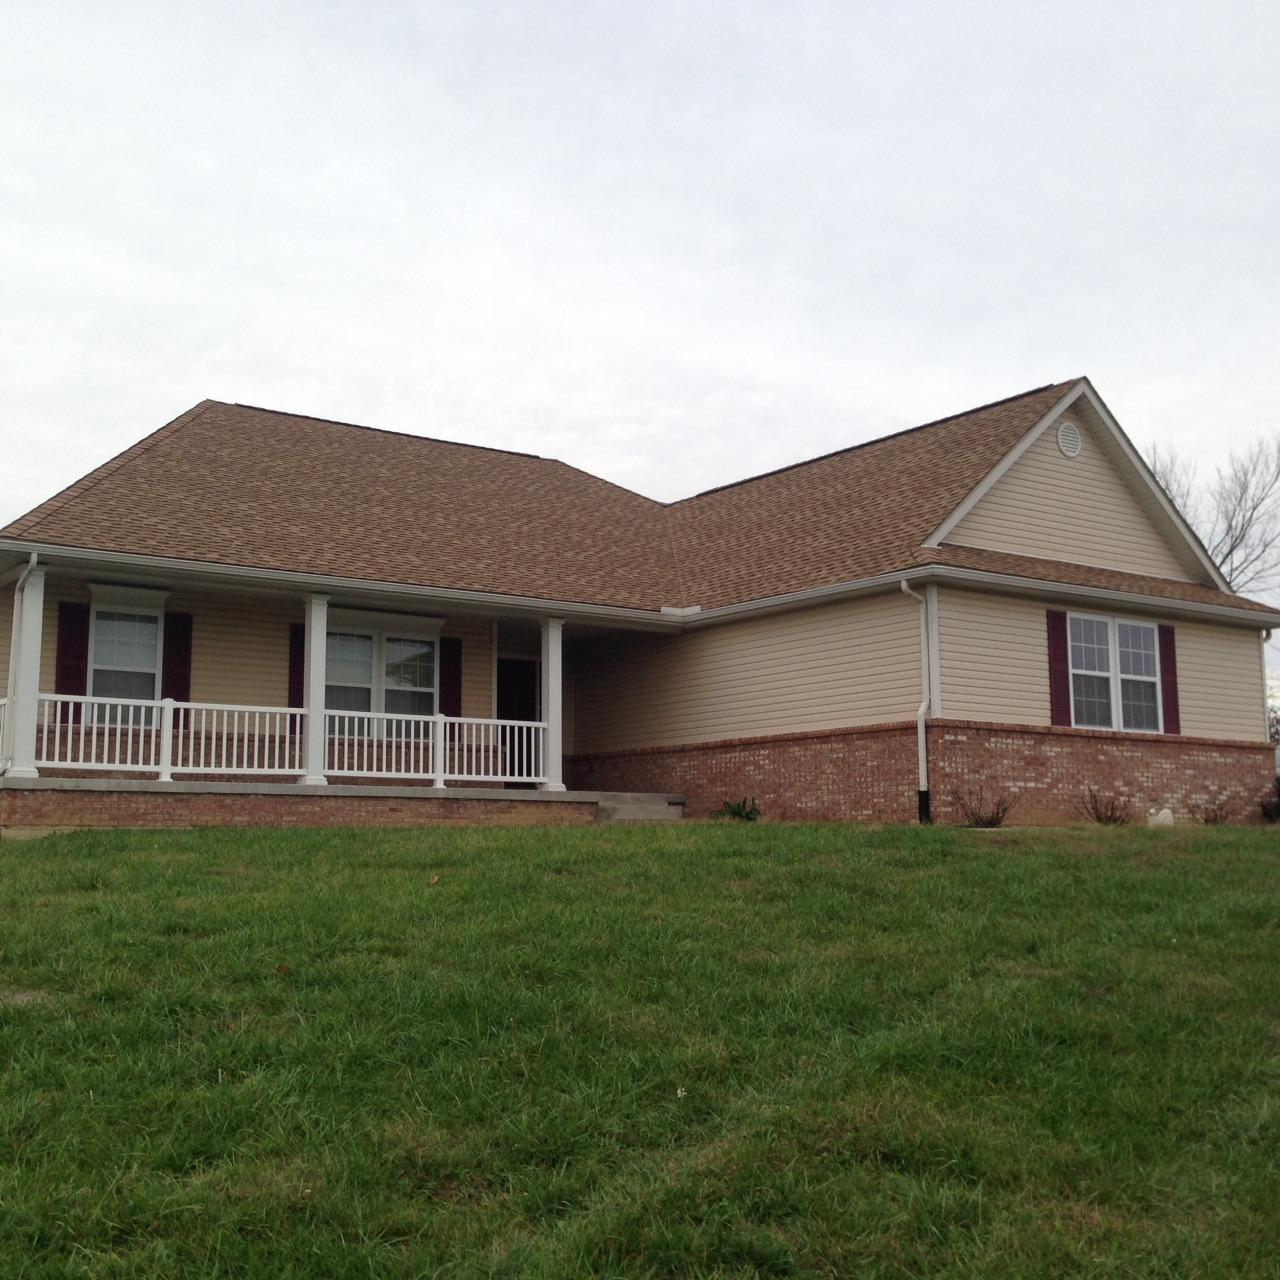 Image of Residential for Sale near Berry, Kentucky, in Pendleton county: 9.54 acres